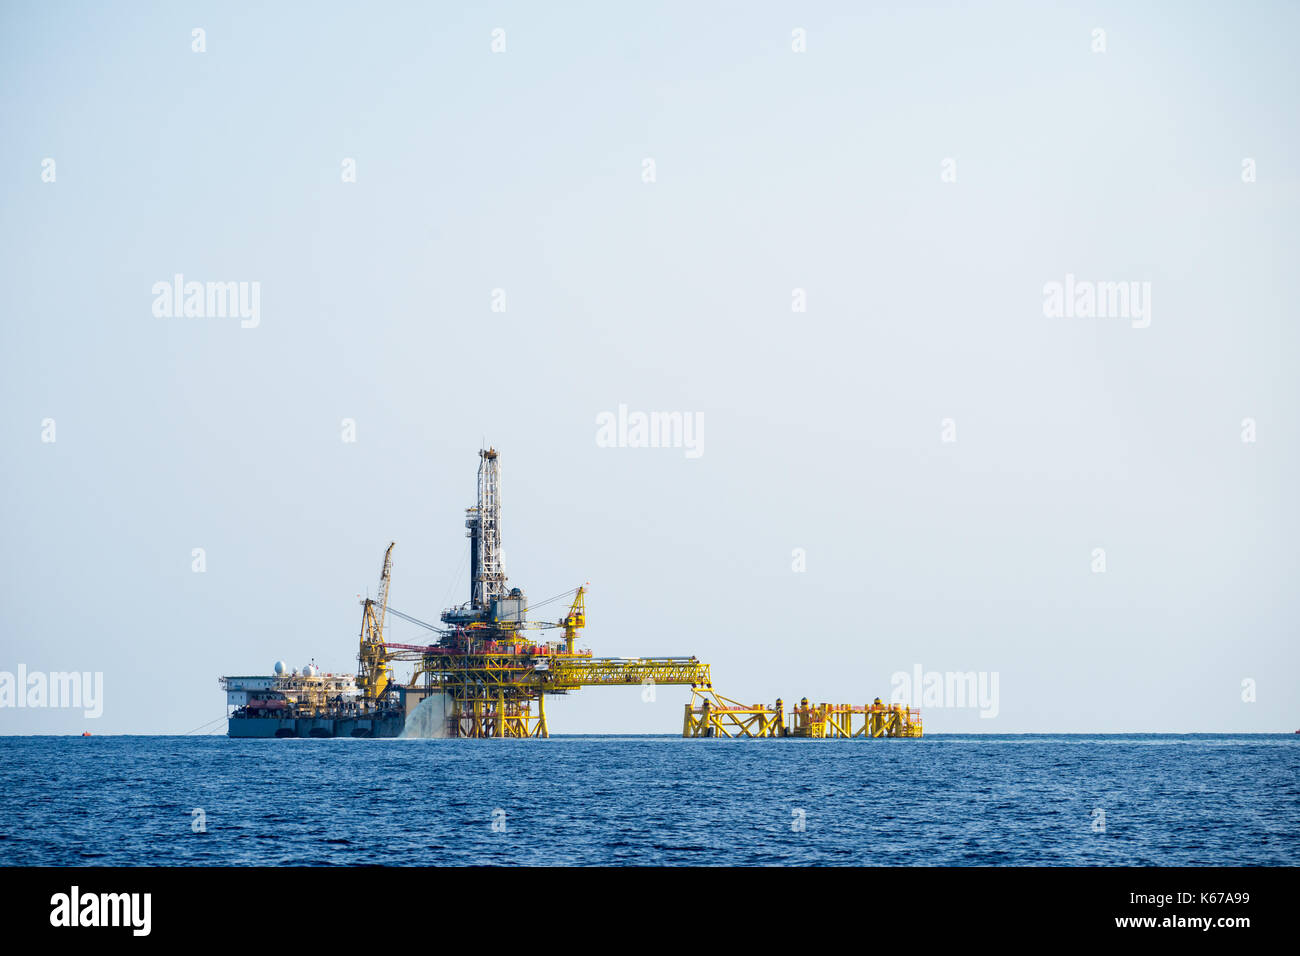 Offshore oil rig and tanker Stock Photo